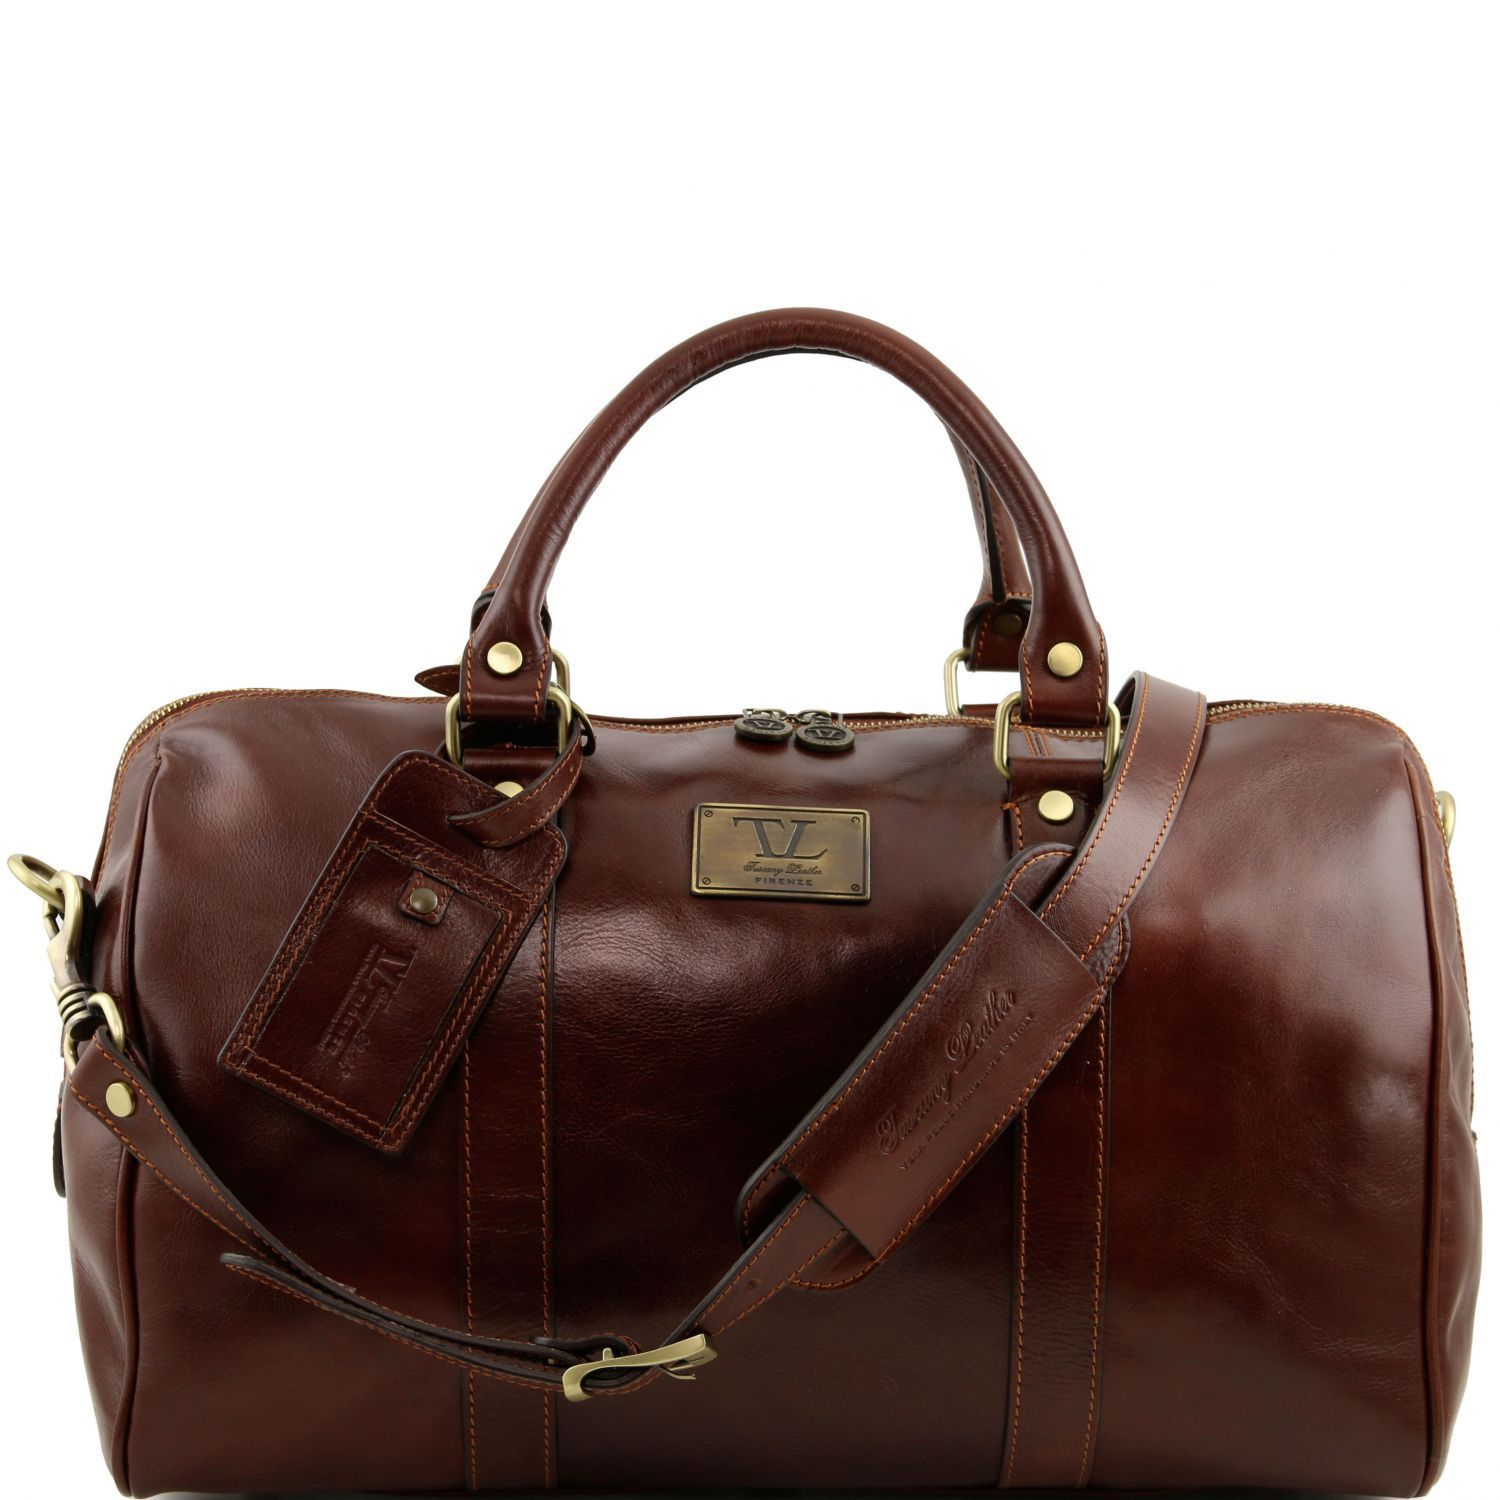 Tuscany Leather Small 'TL Voyager' Travel Leather Duffle Bag - Small Duffle Bag Tuscany Leather Brown